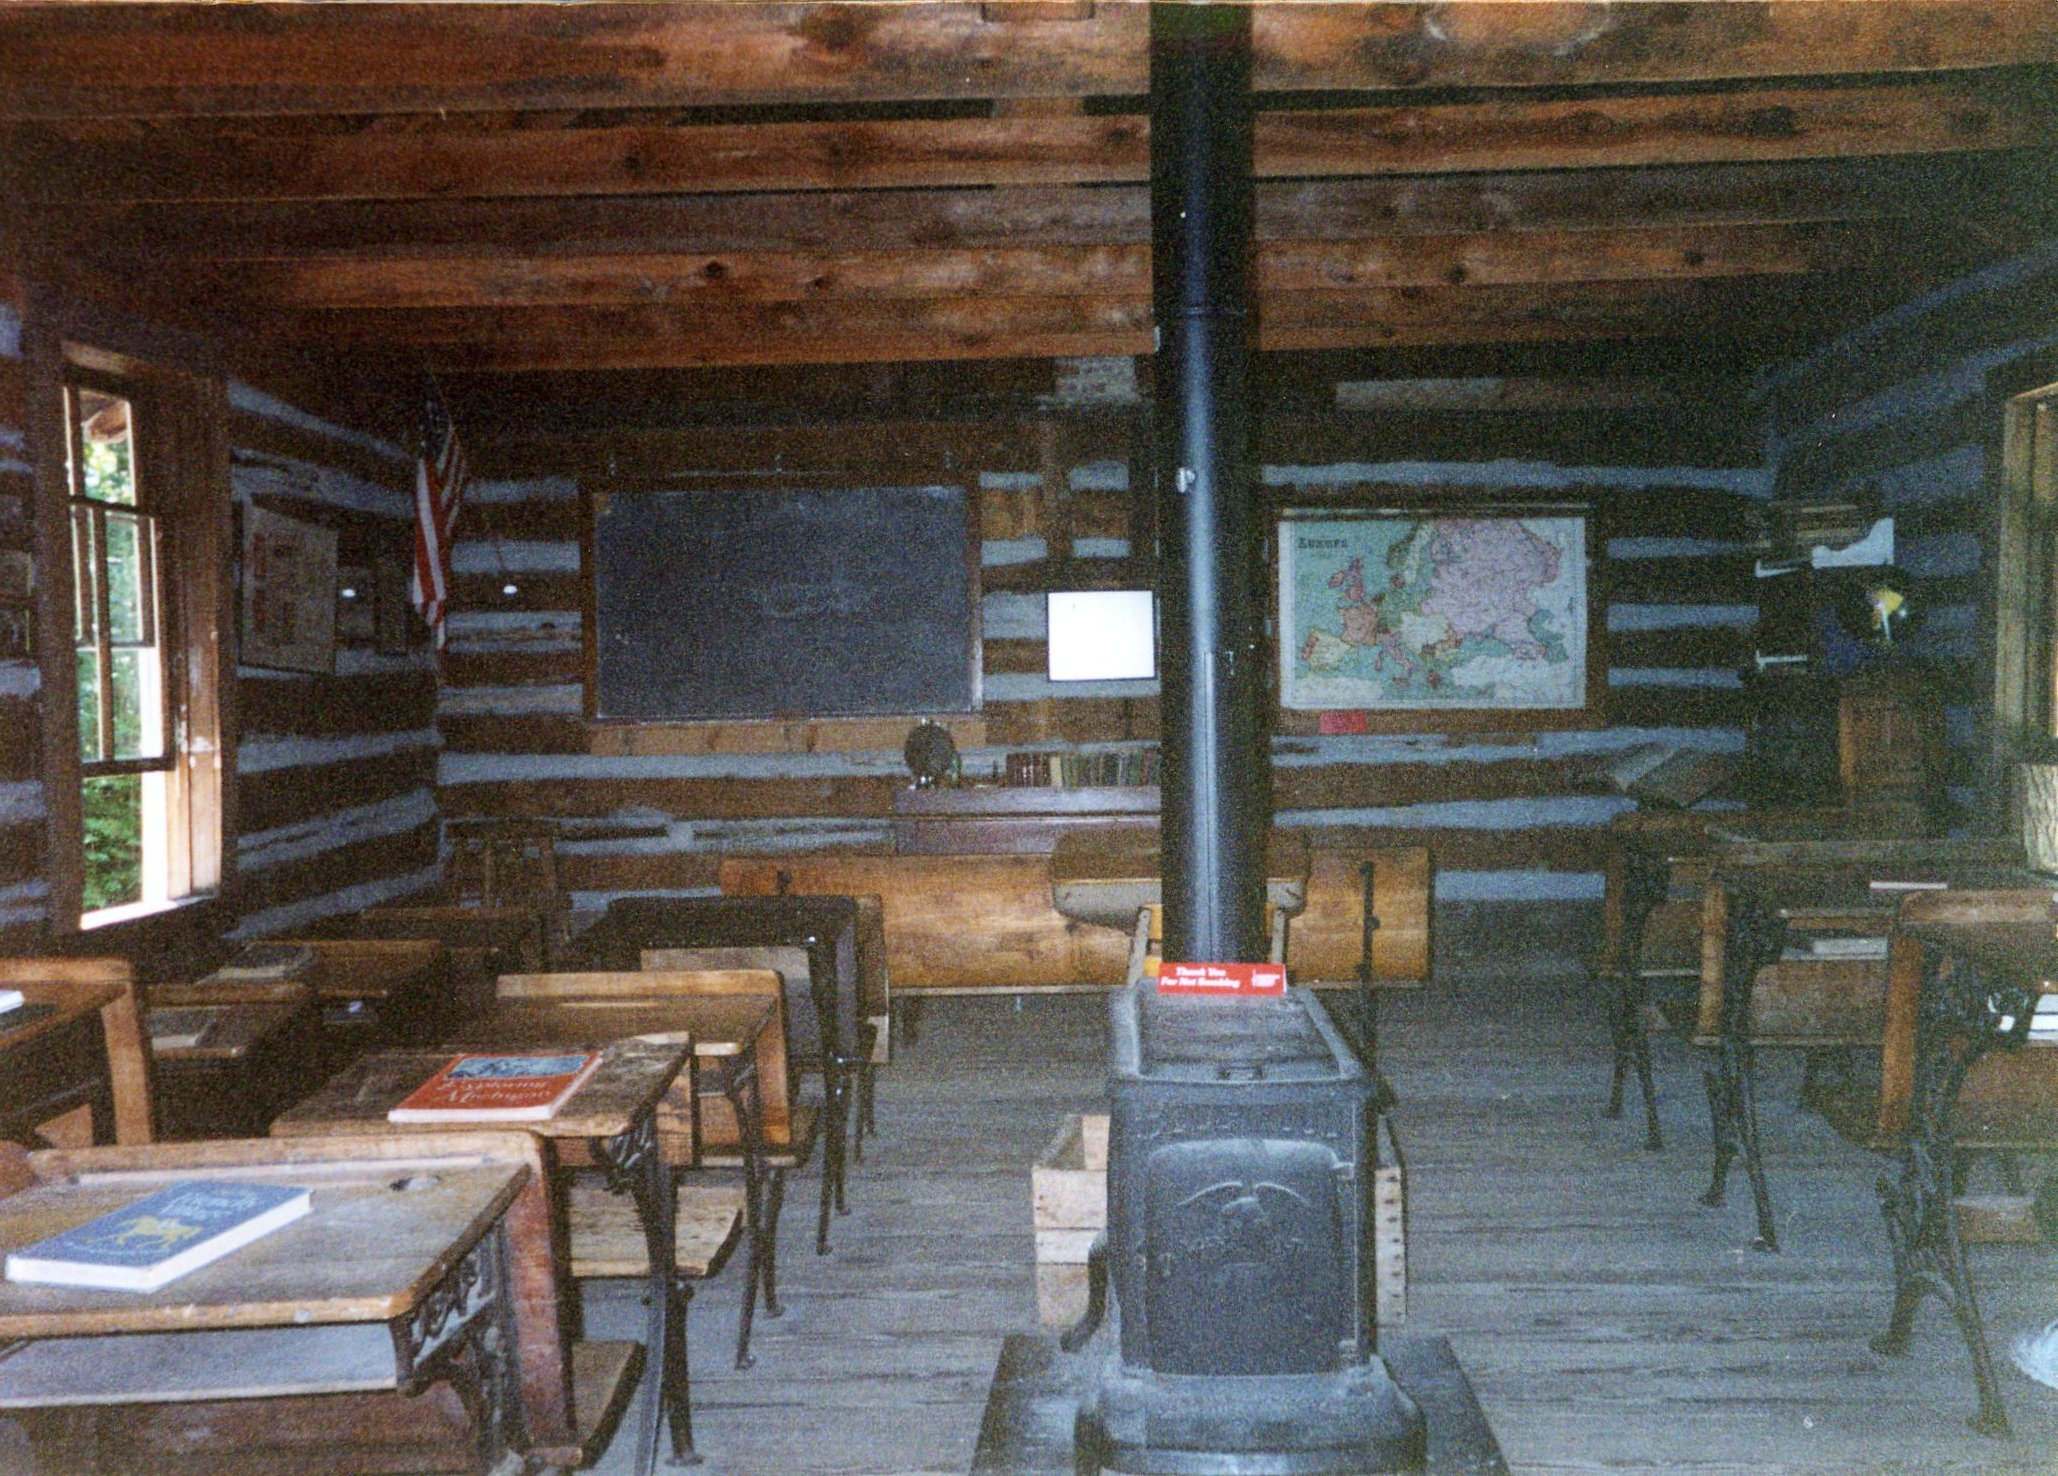 bailey_school_interior_13.jpg